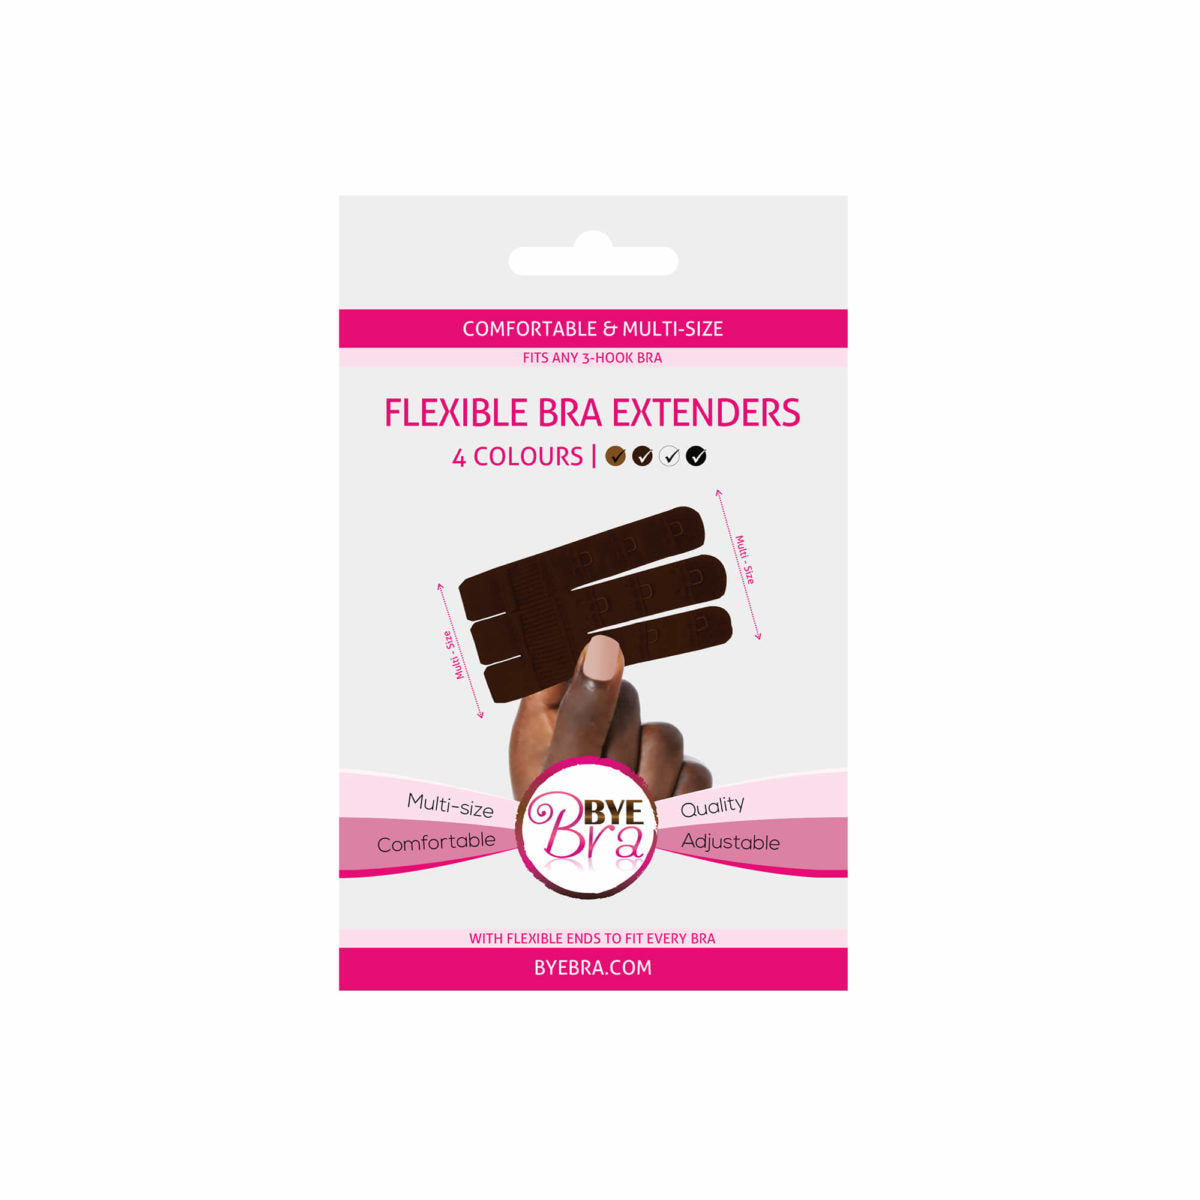 Bye Bra provides the new generation of bra extenders. This 3 Three Hook Bra extenders are extension pieces for any bra that is too tight, giving a better fit to any Bra that is too small